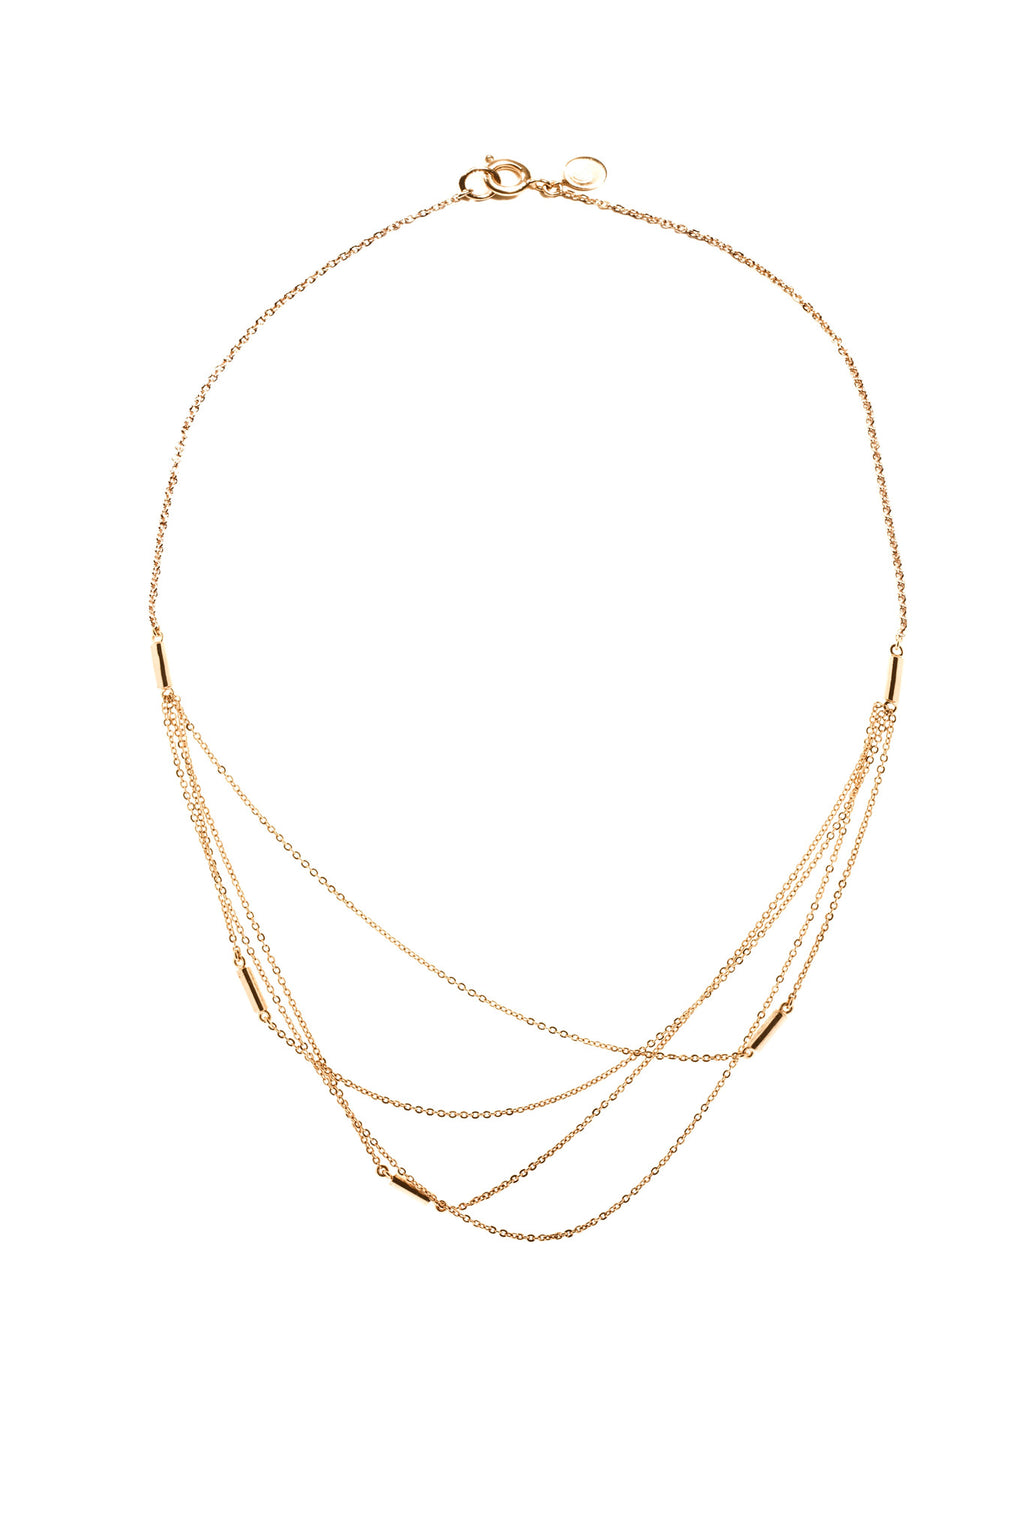 22KT Gold Plated Multi Layered Necklace from the Ogham Collection